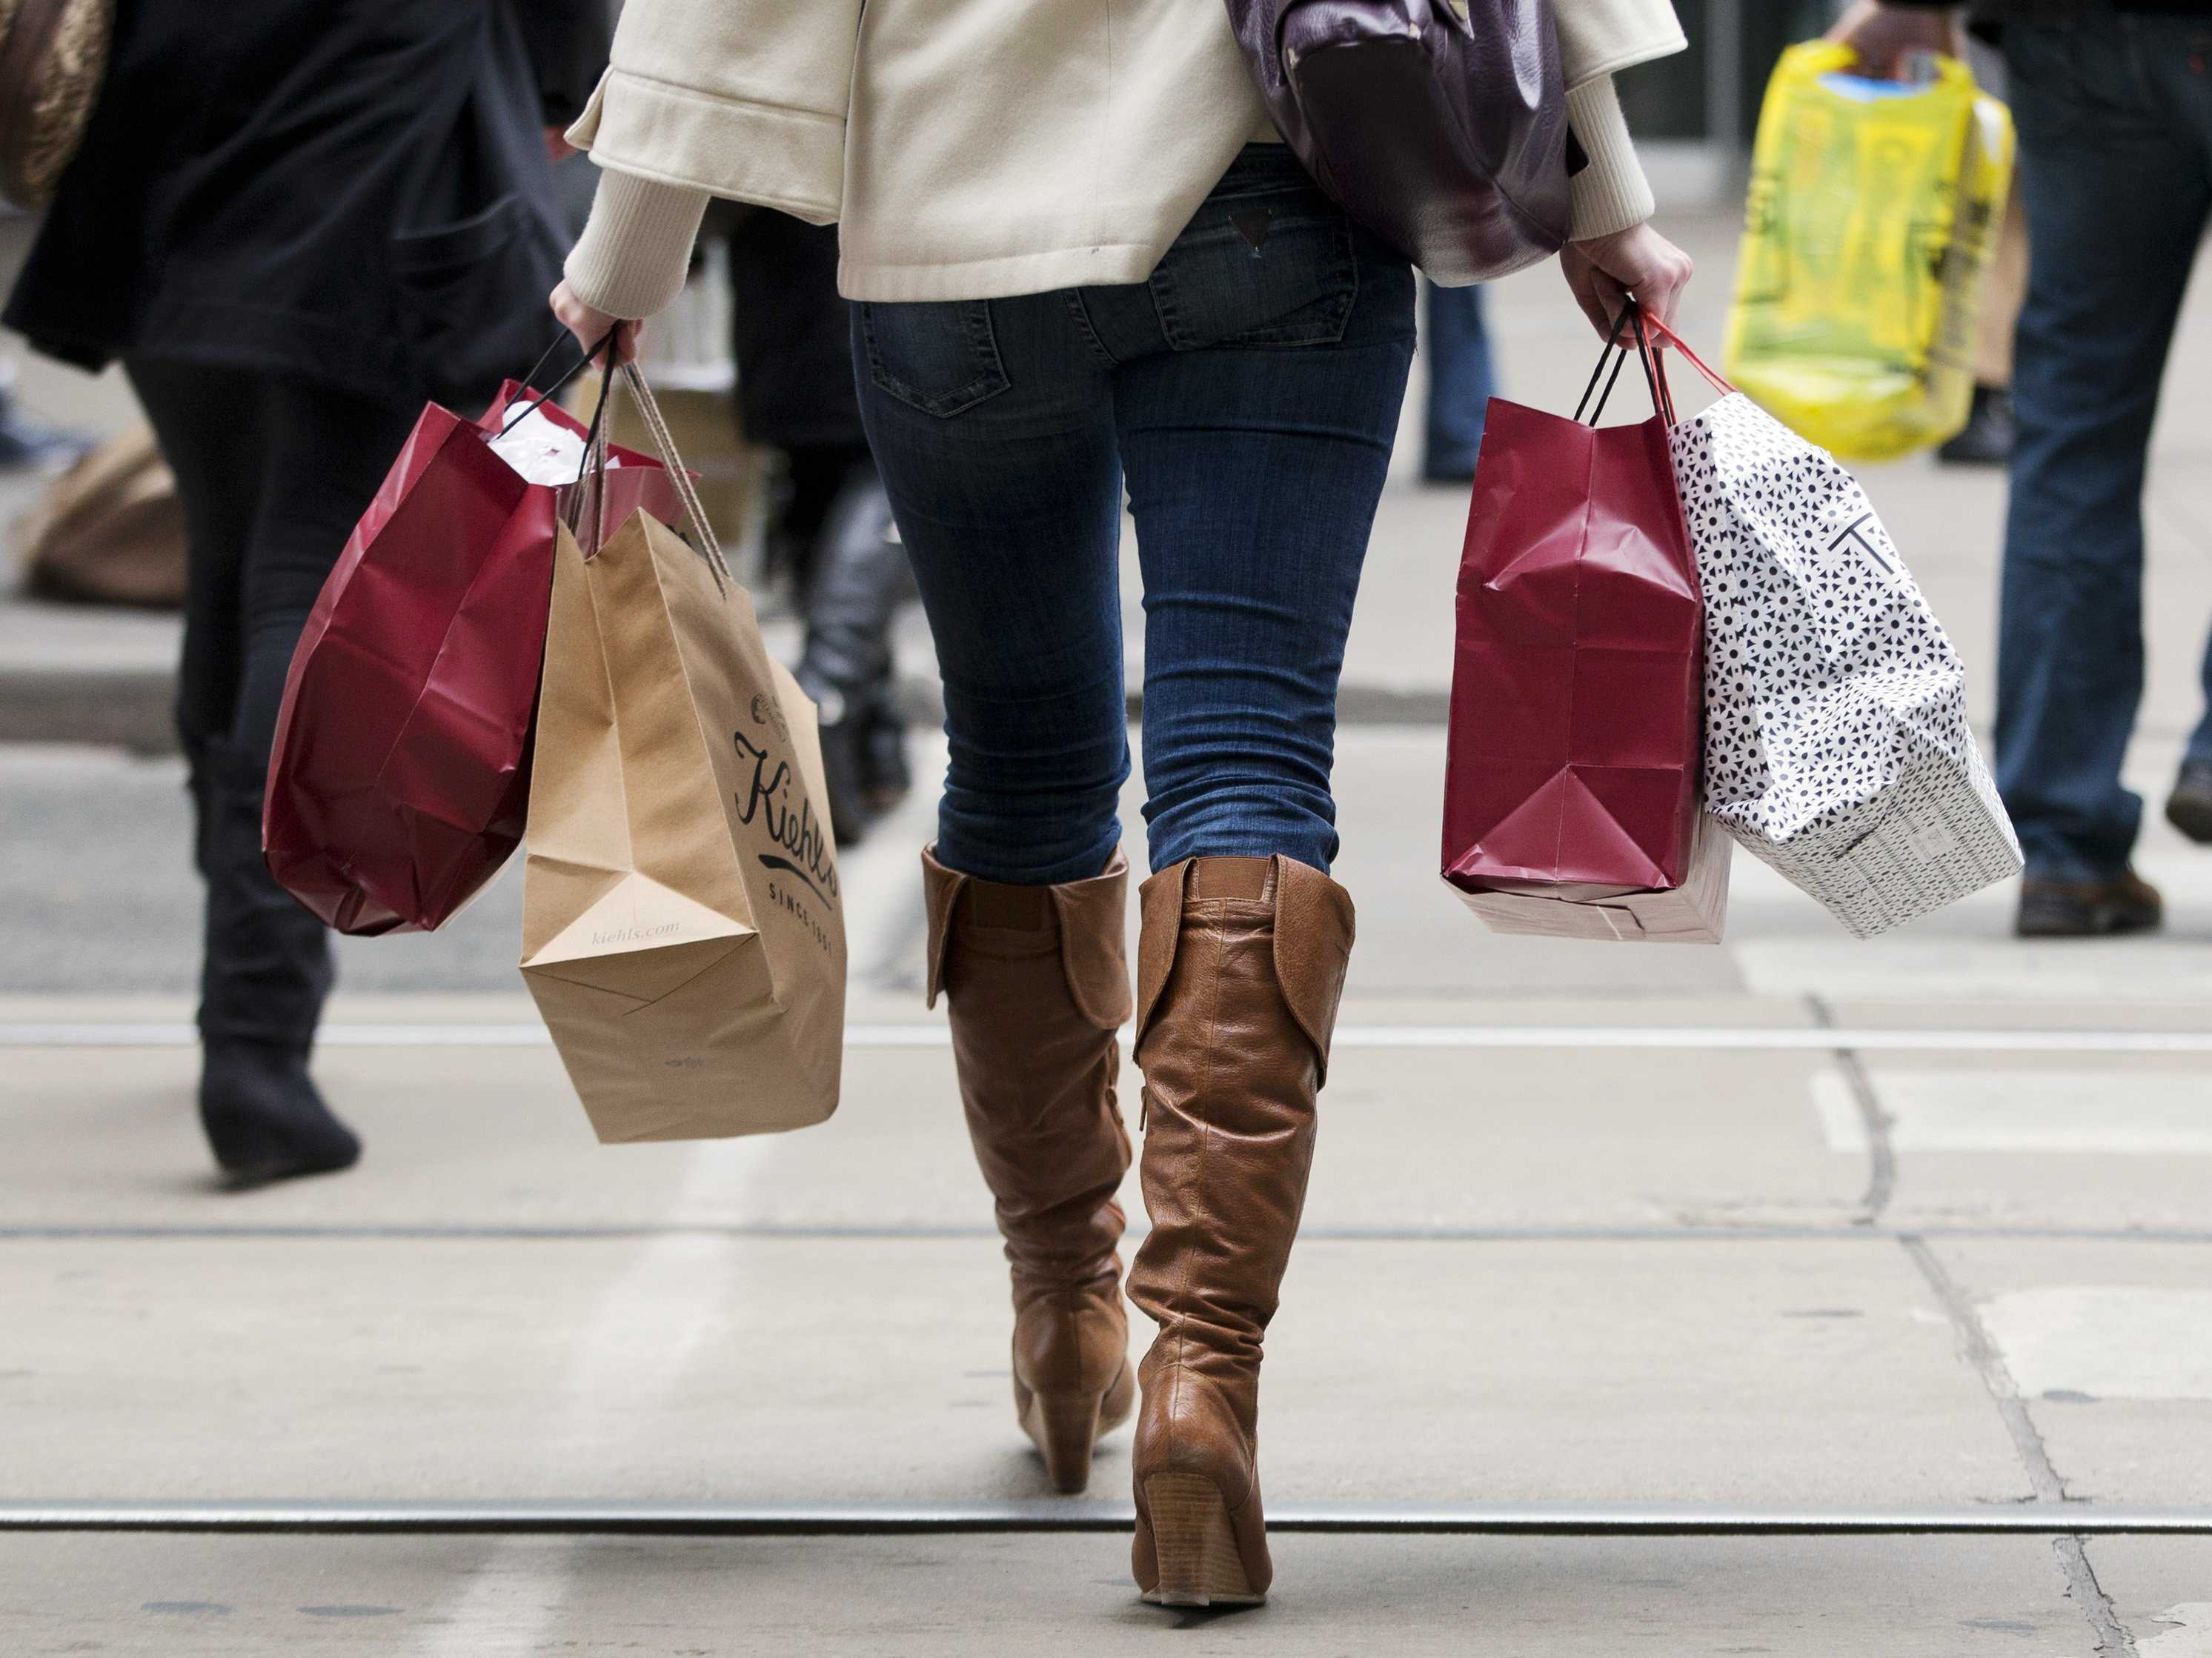 5-holiday-shopping-tips-to-stay-on-budget